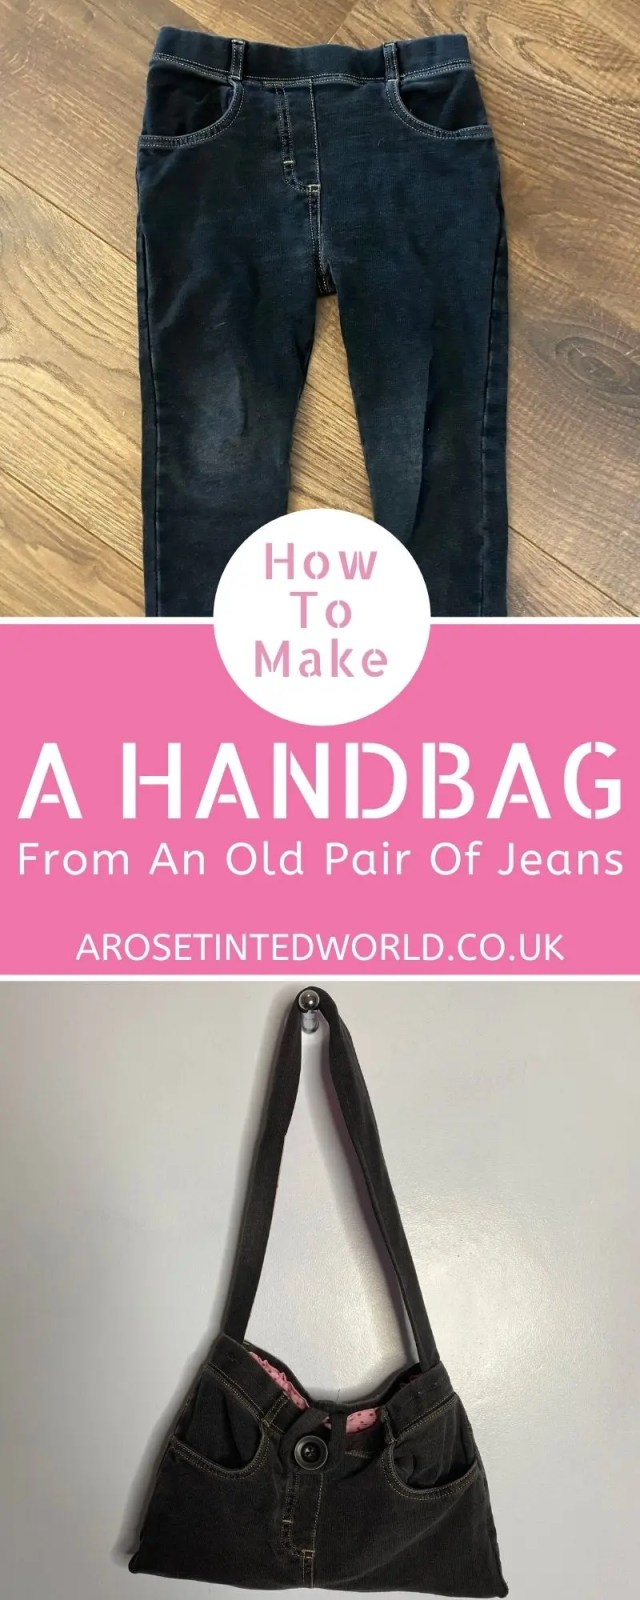 Upcycling jeans to make a handbag - great DIY upcycling project. Full Step by Step sewing tutorial, perfect for beginners. Reuse old clothes.